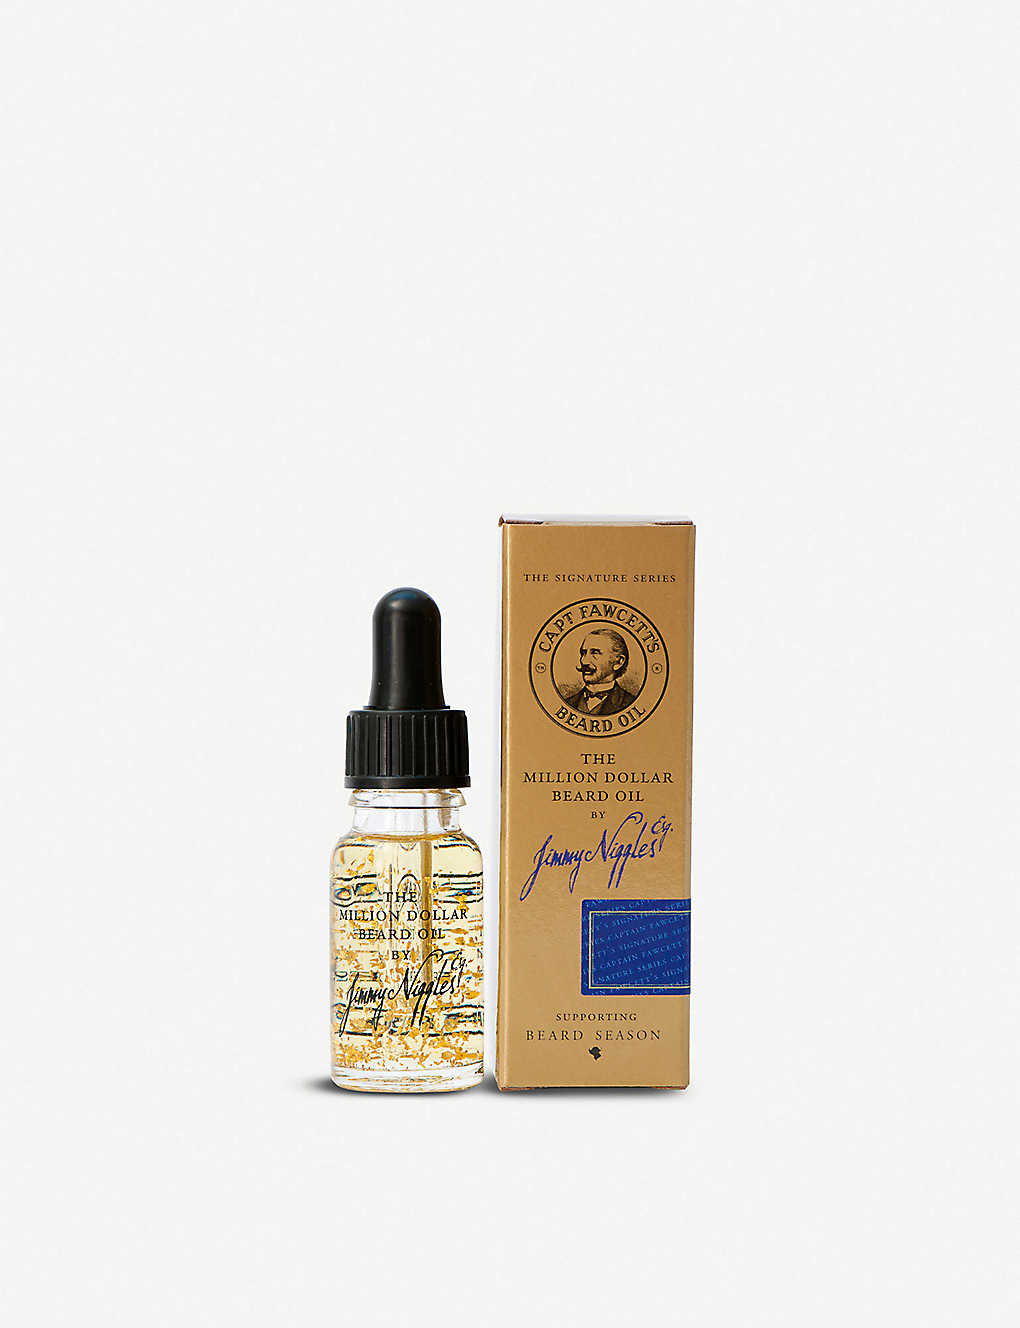 CAPTAIN FAWCETT: Jimmy Niggles beard oil 10ml